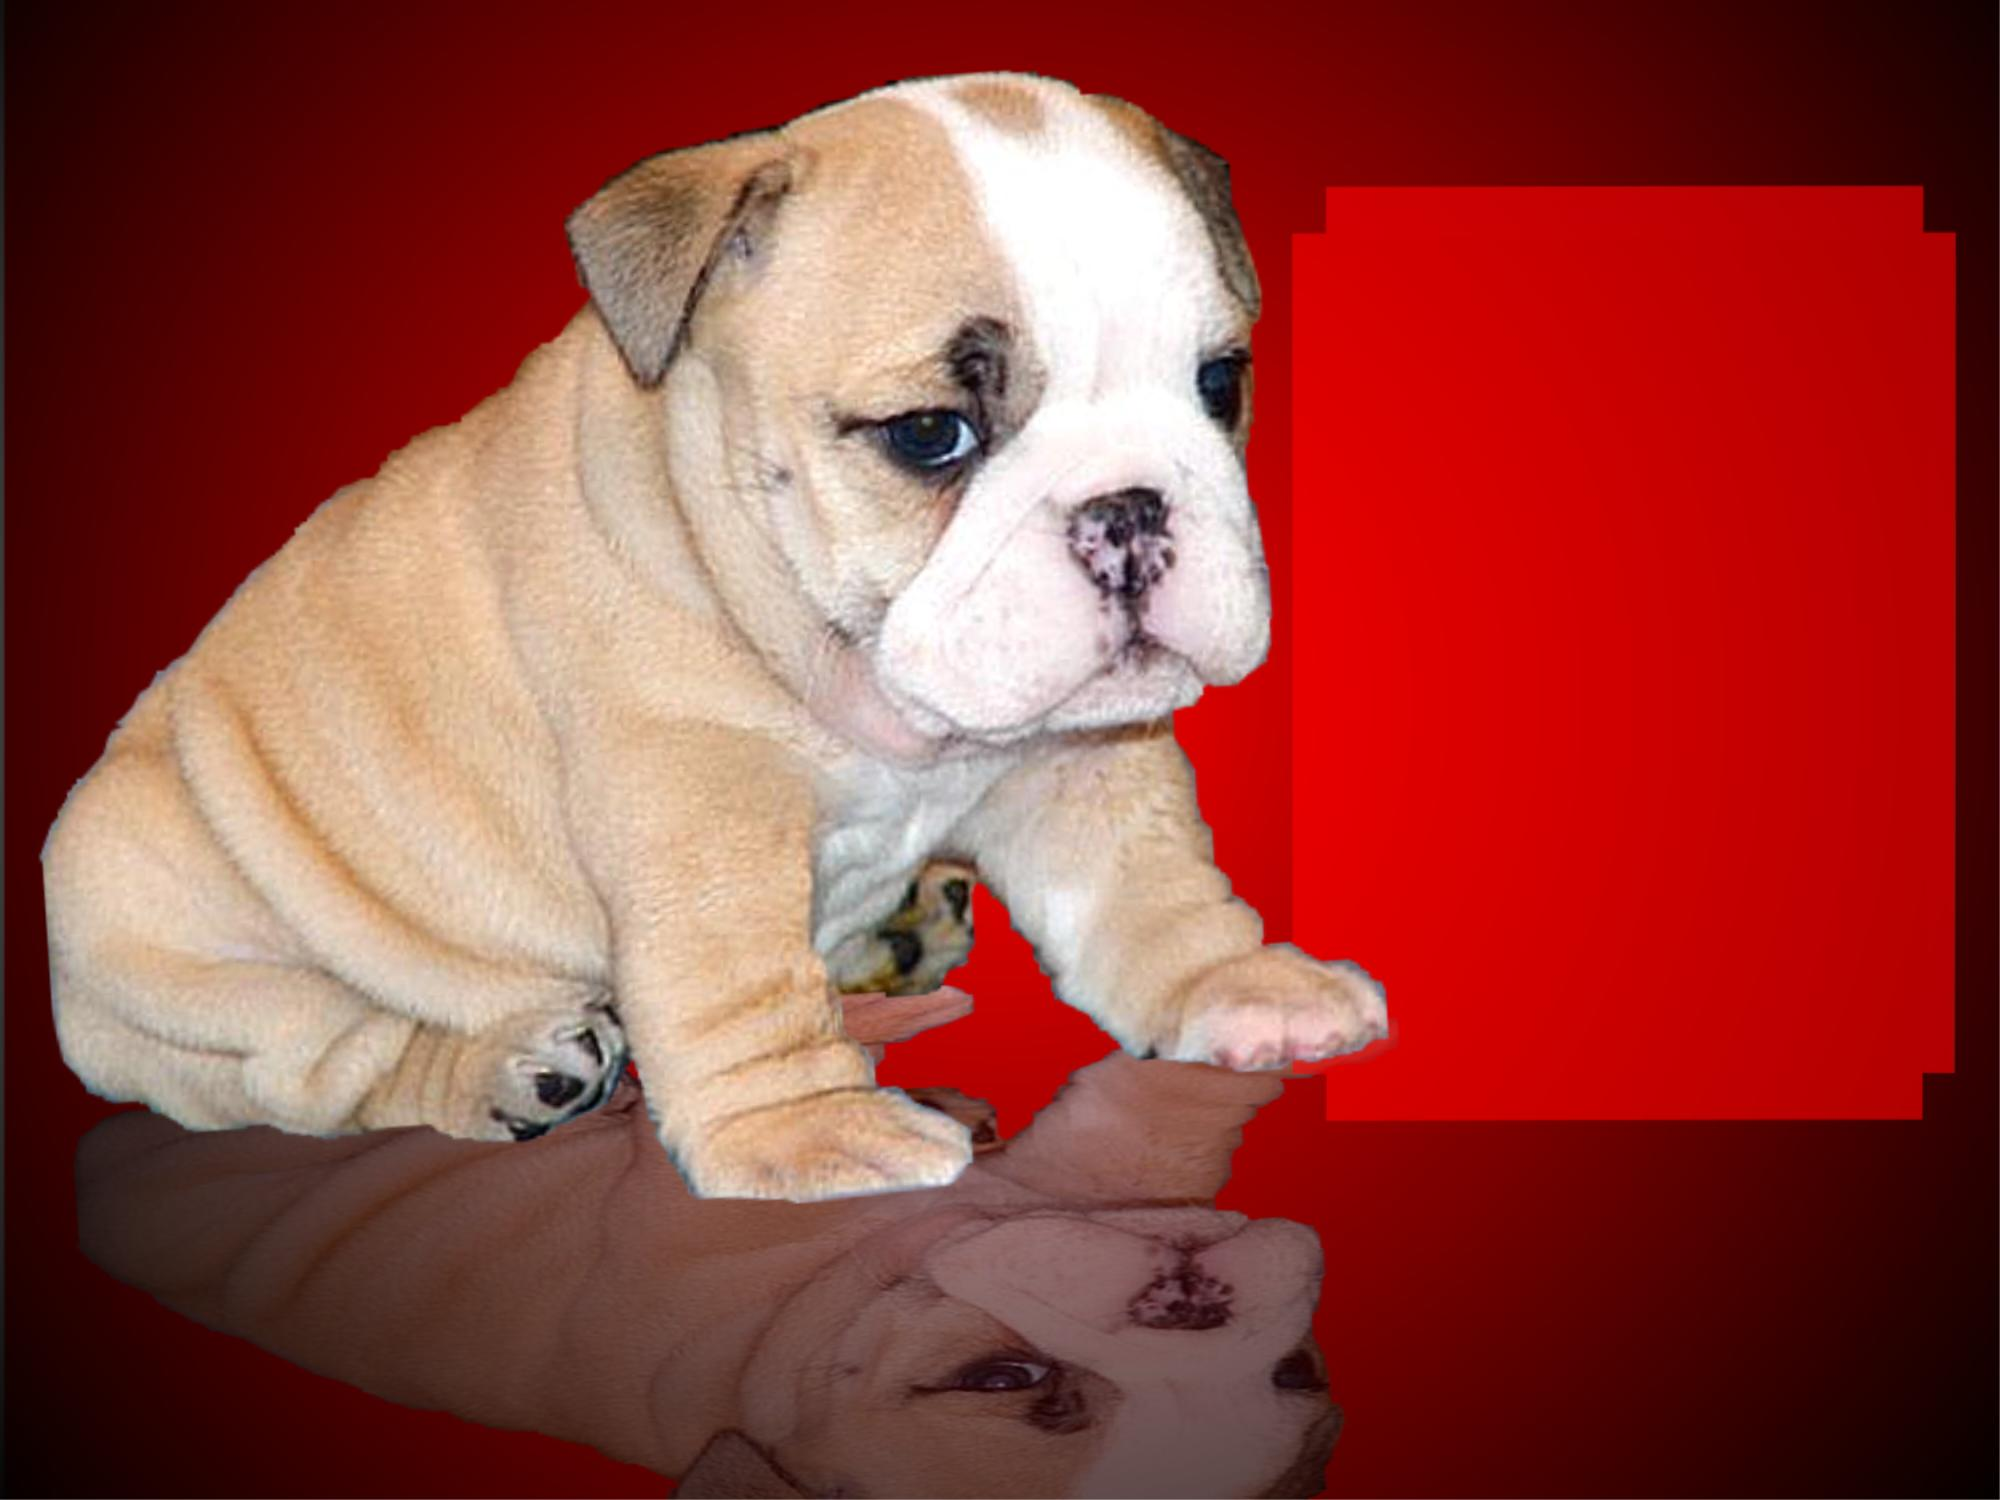 English Bulldog Stud Service Bulldog Puppies For Sale Bulldog Stud